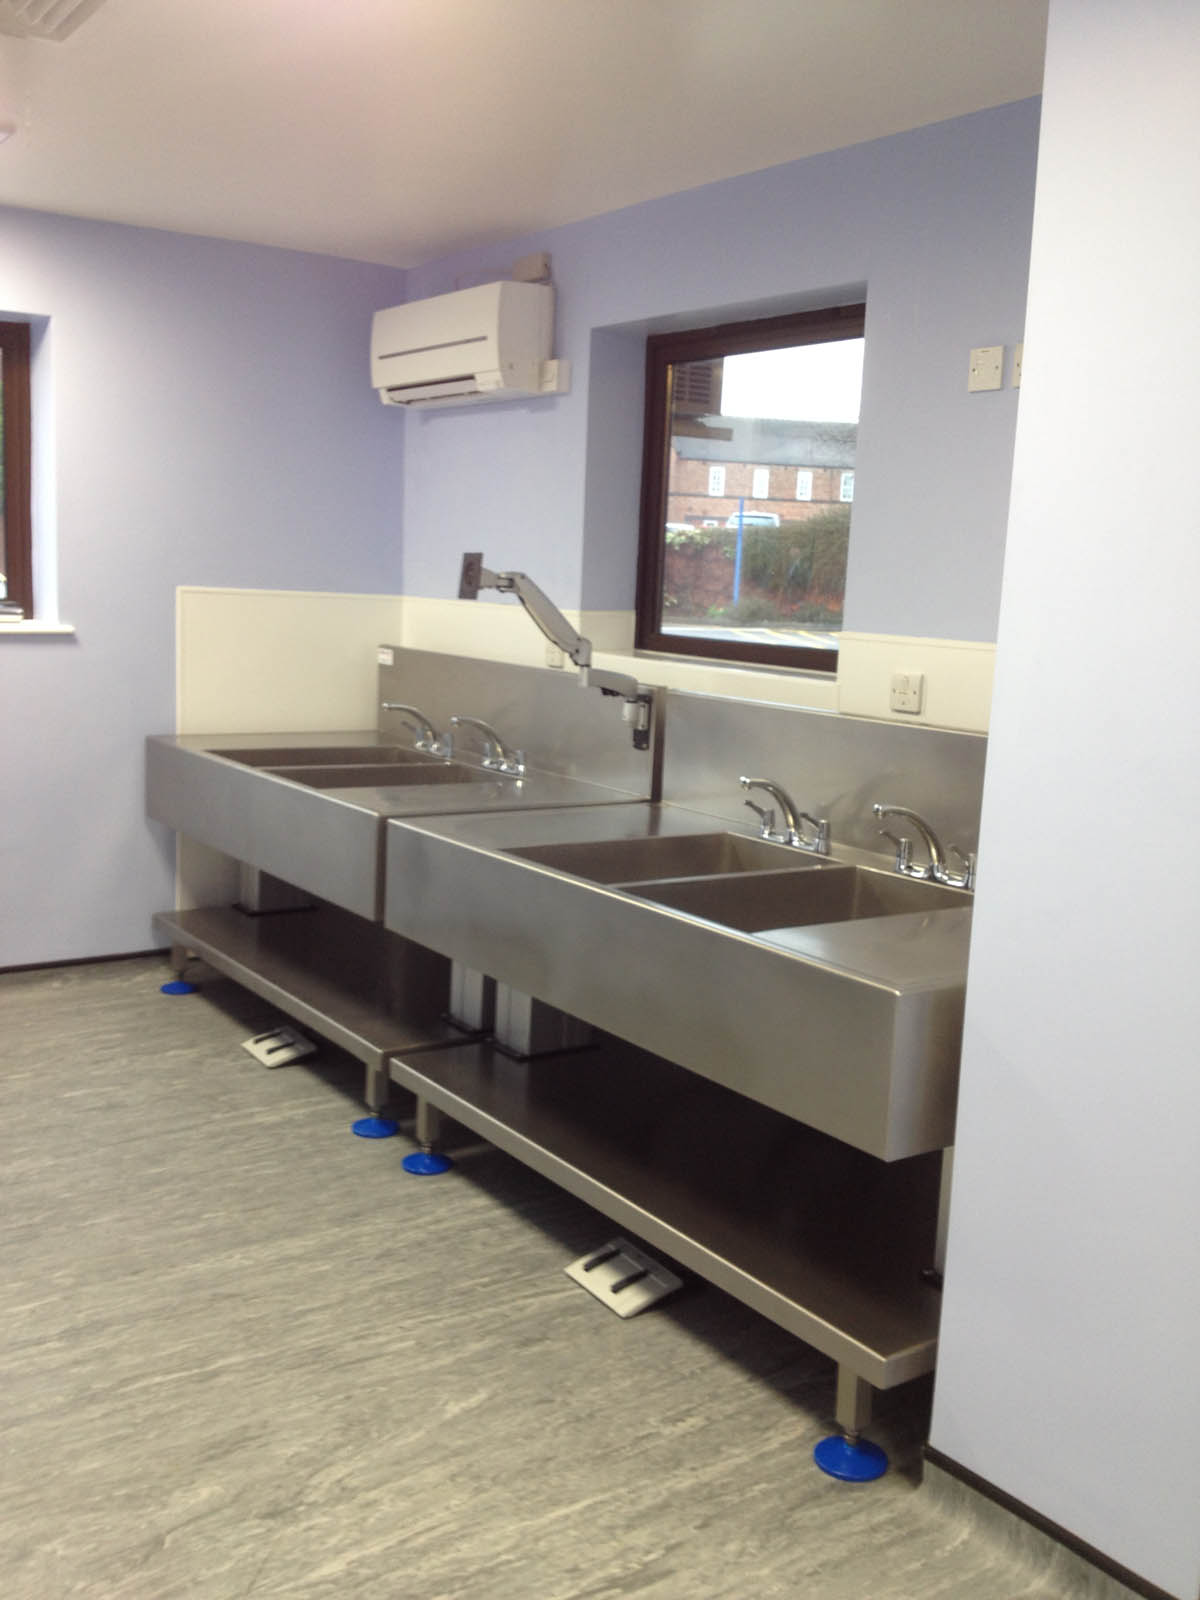 Decontamination Room Design: Manual Decontamination Sinks For Endoscopy